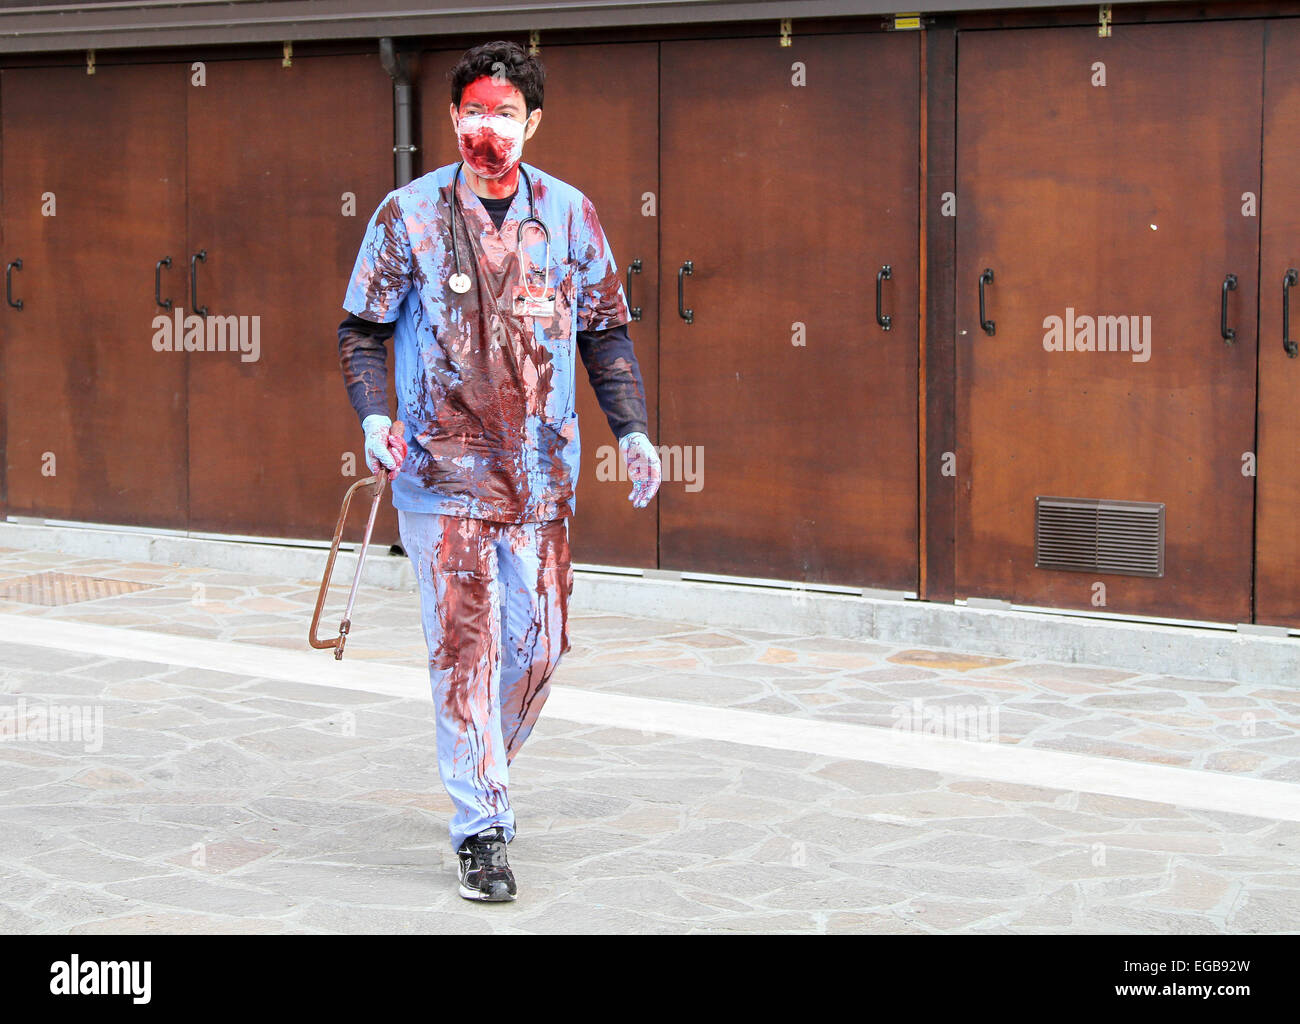 Venice, Italy. 21st February, 2015. A participant of the Zombie Walk dressed up as a zombie. The 2nd edition of - Stock Image